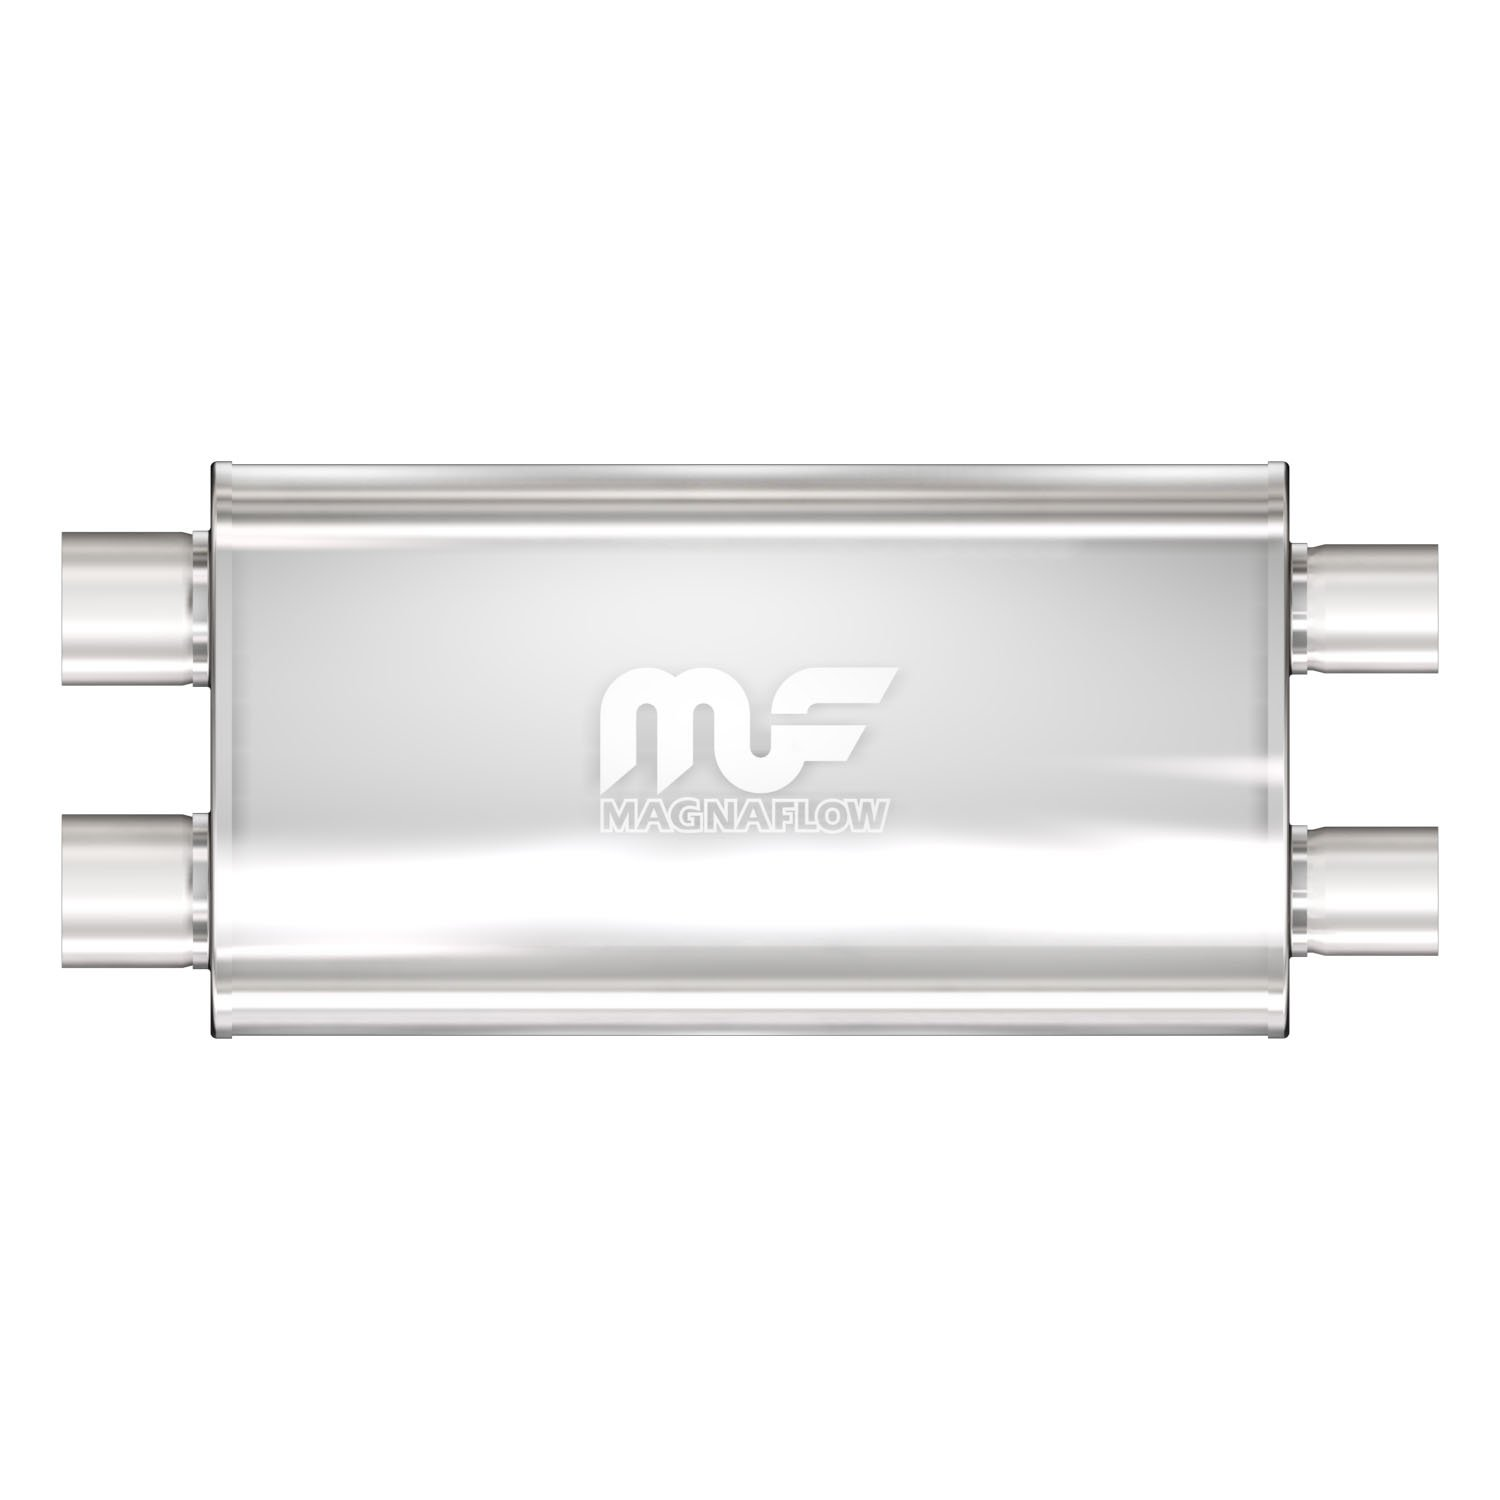 MagnaFlow 12599 Exhaust Muffler by MagnaFlow Exhaust Products